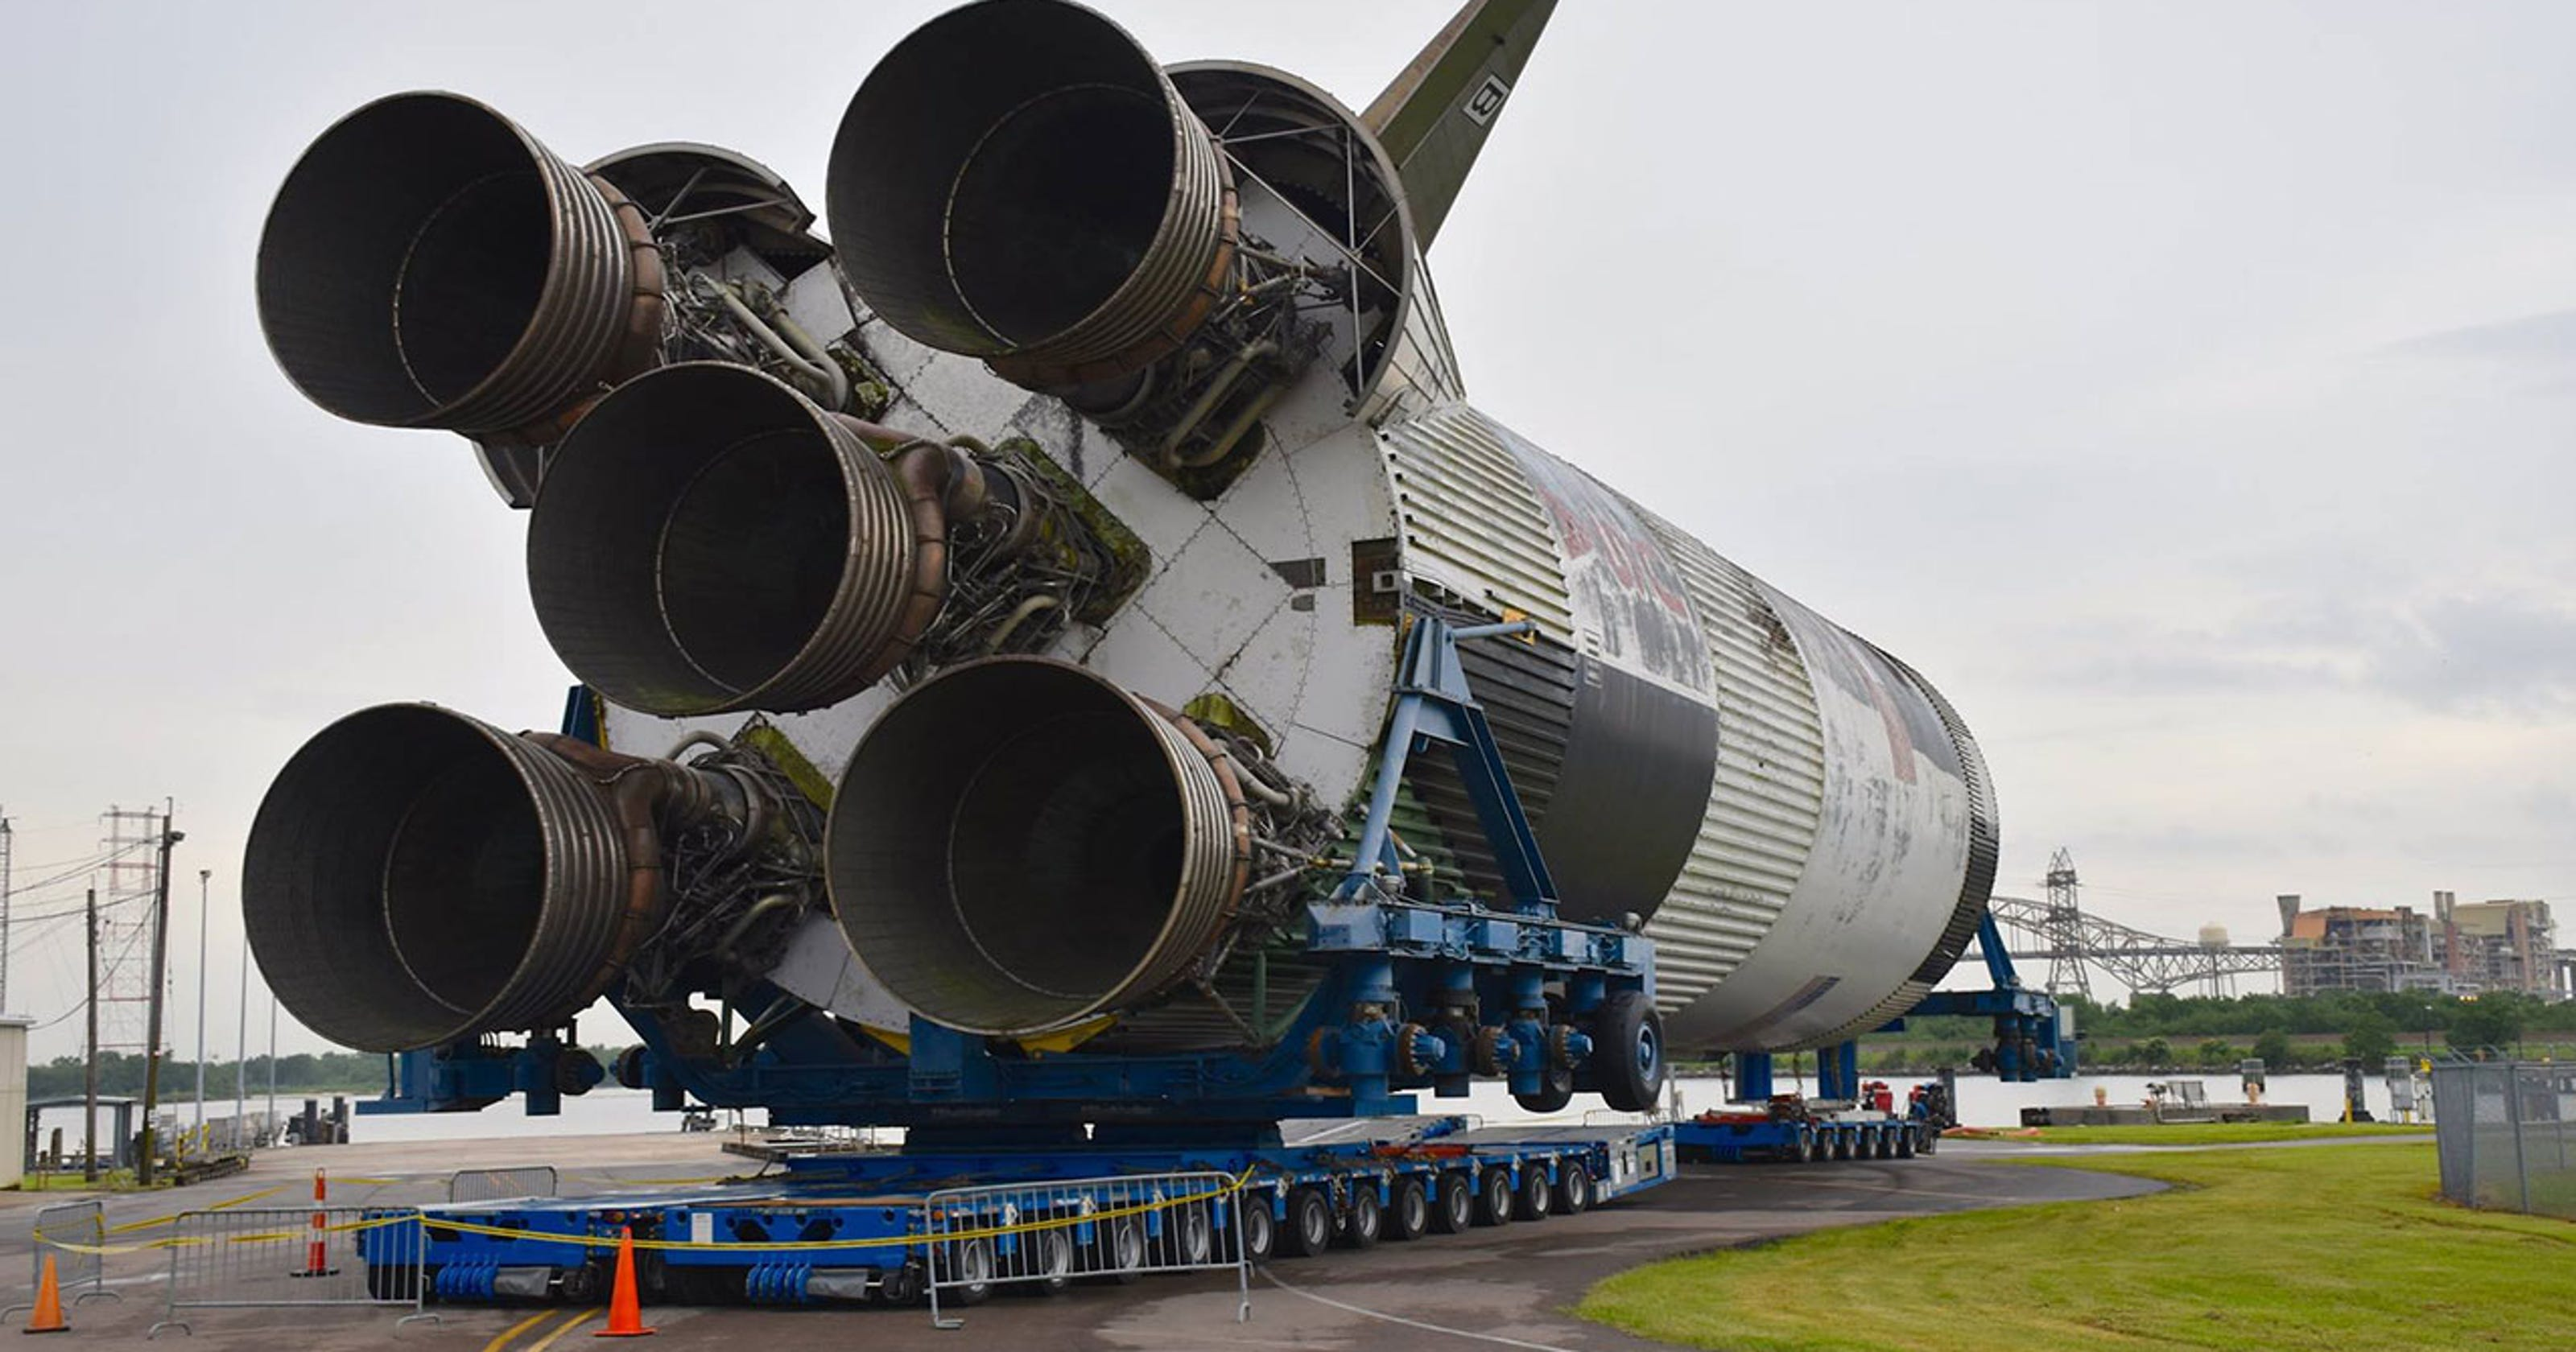 636017701705752423-saturn-rocket-stage-2